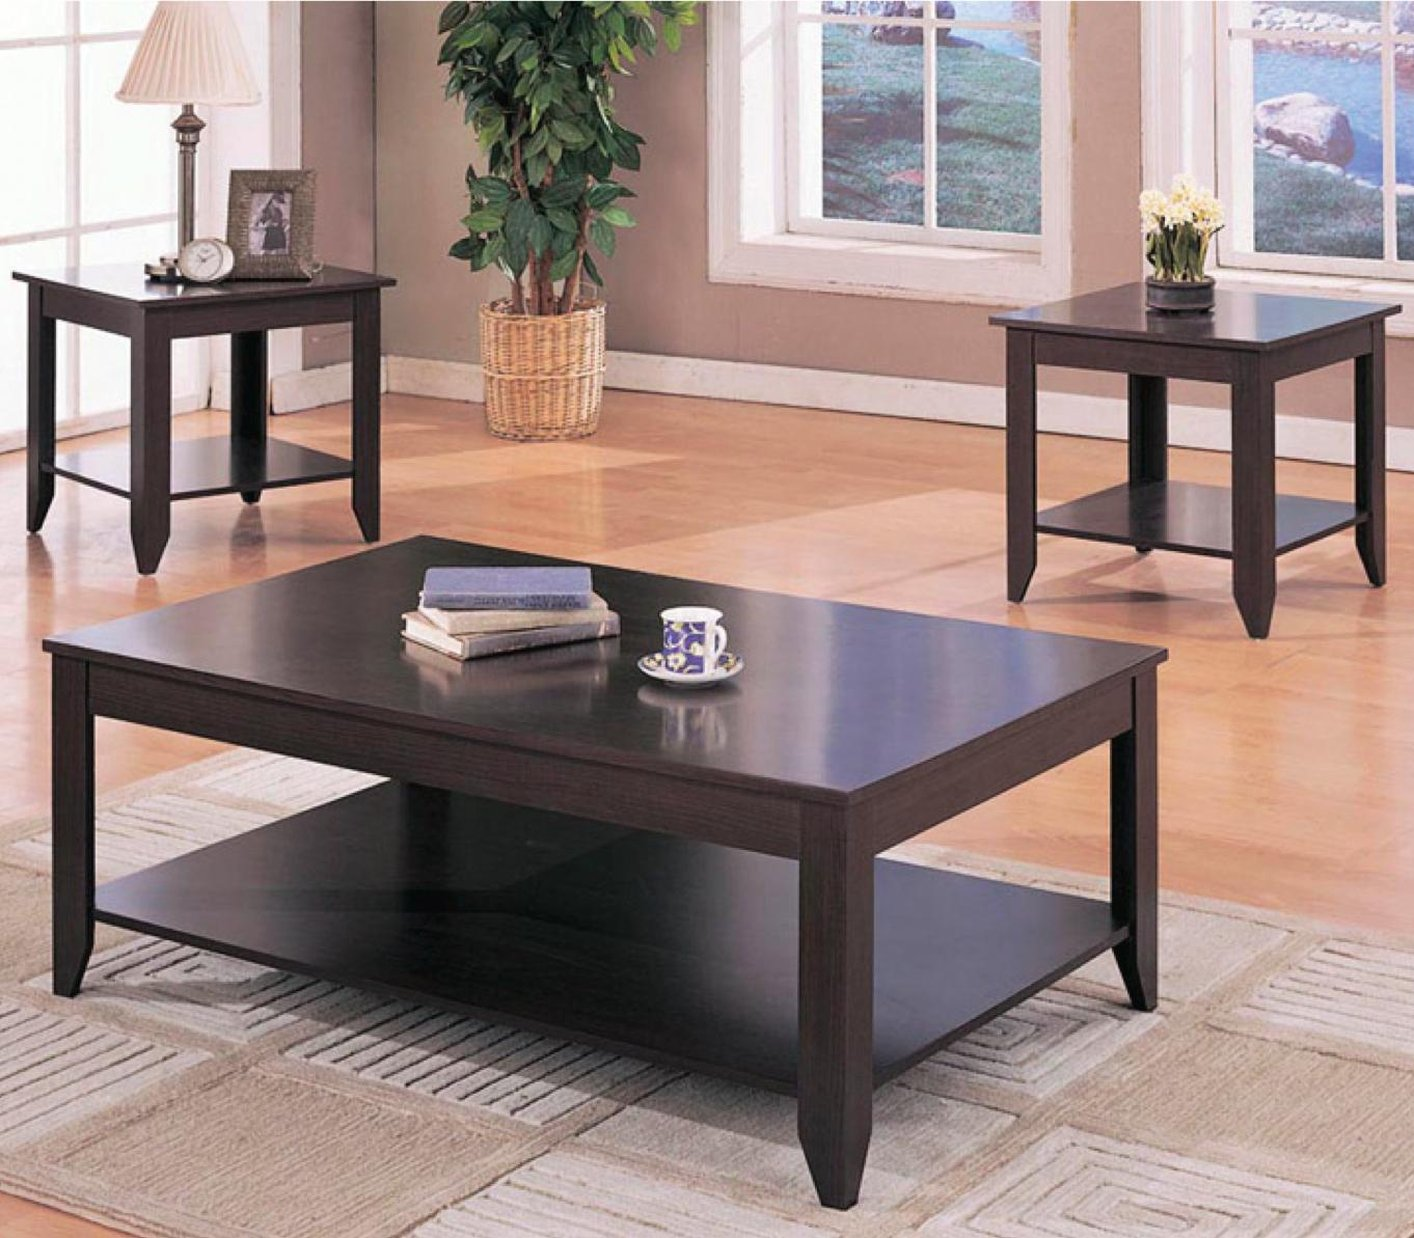 Glass Coffee Tables Durban: Brown Wood 3pc Coffee Table Set